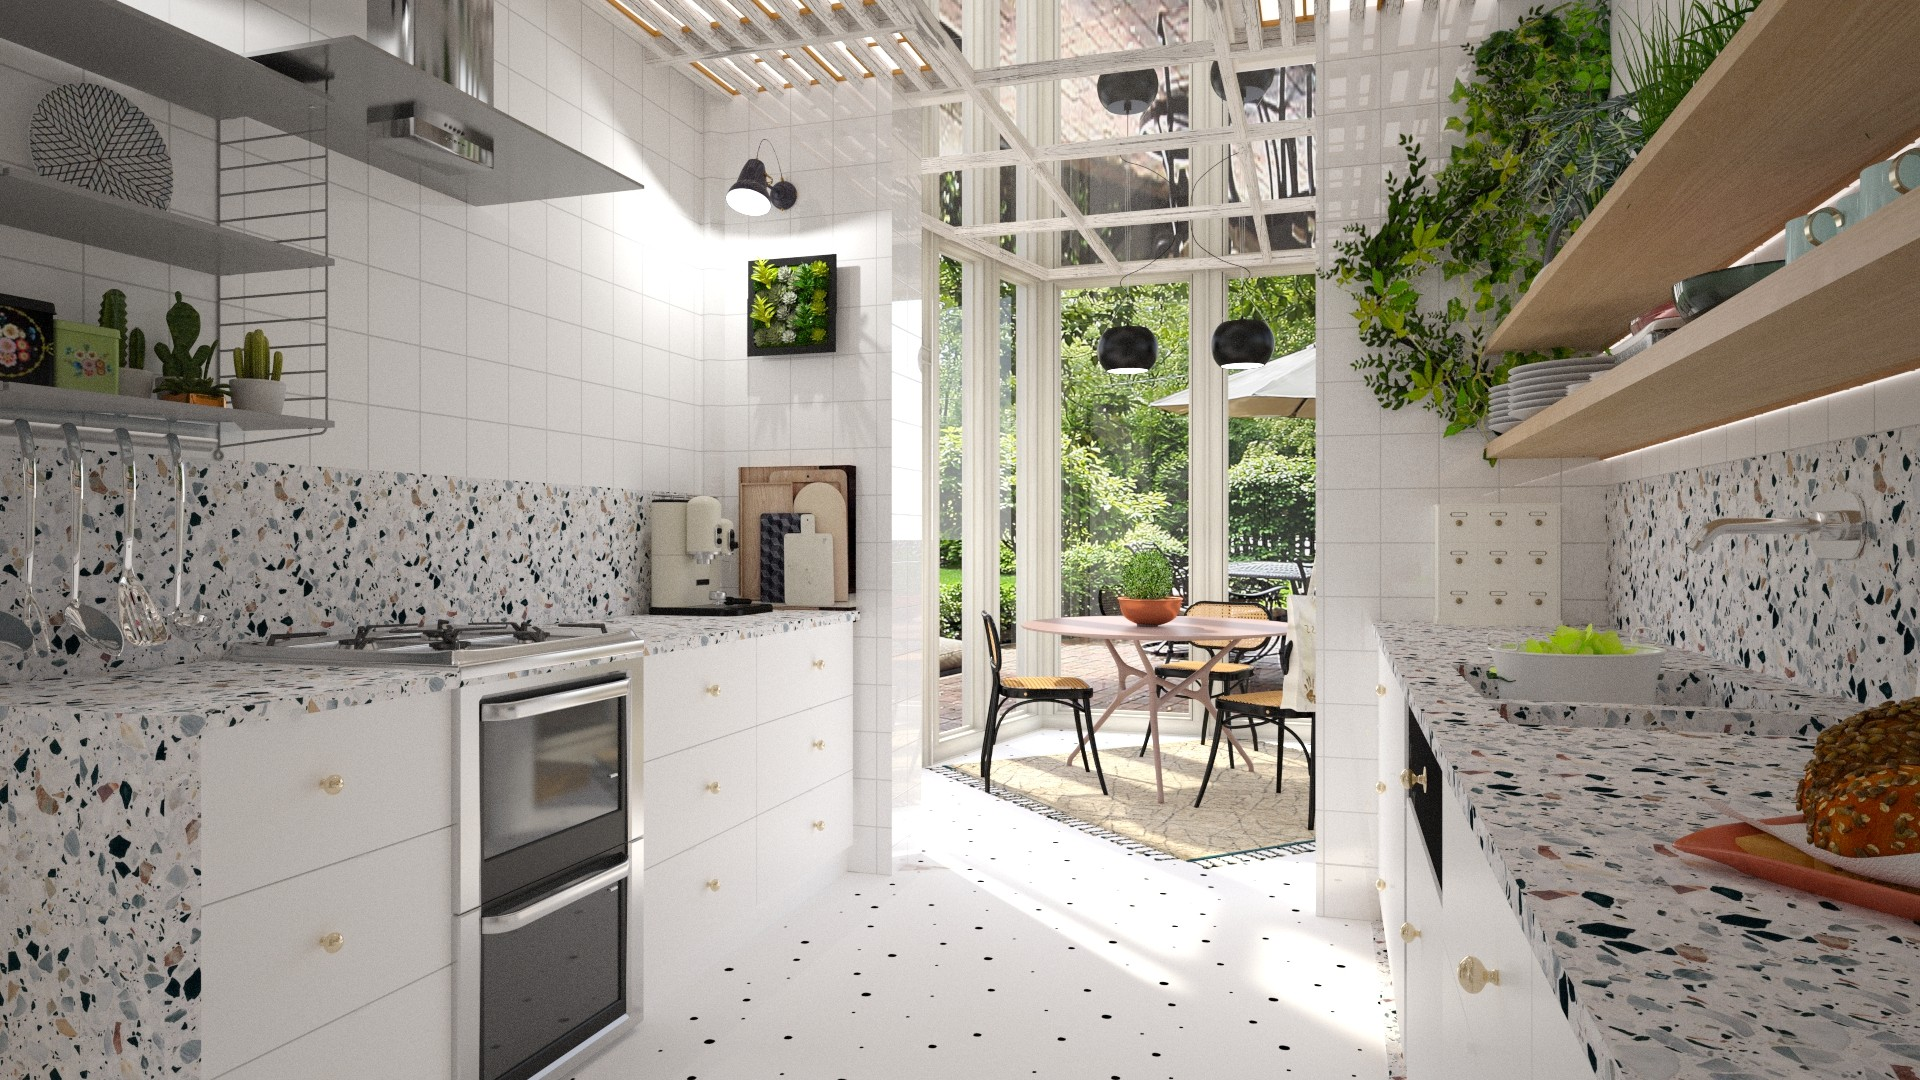 Kitchen Conservatory Combination contest on Roomstyler